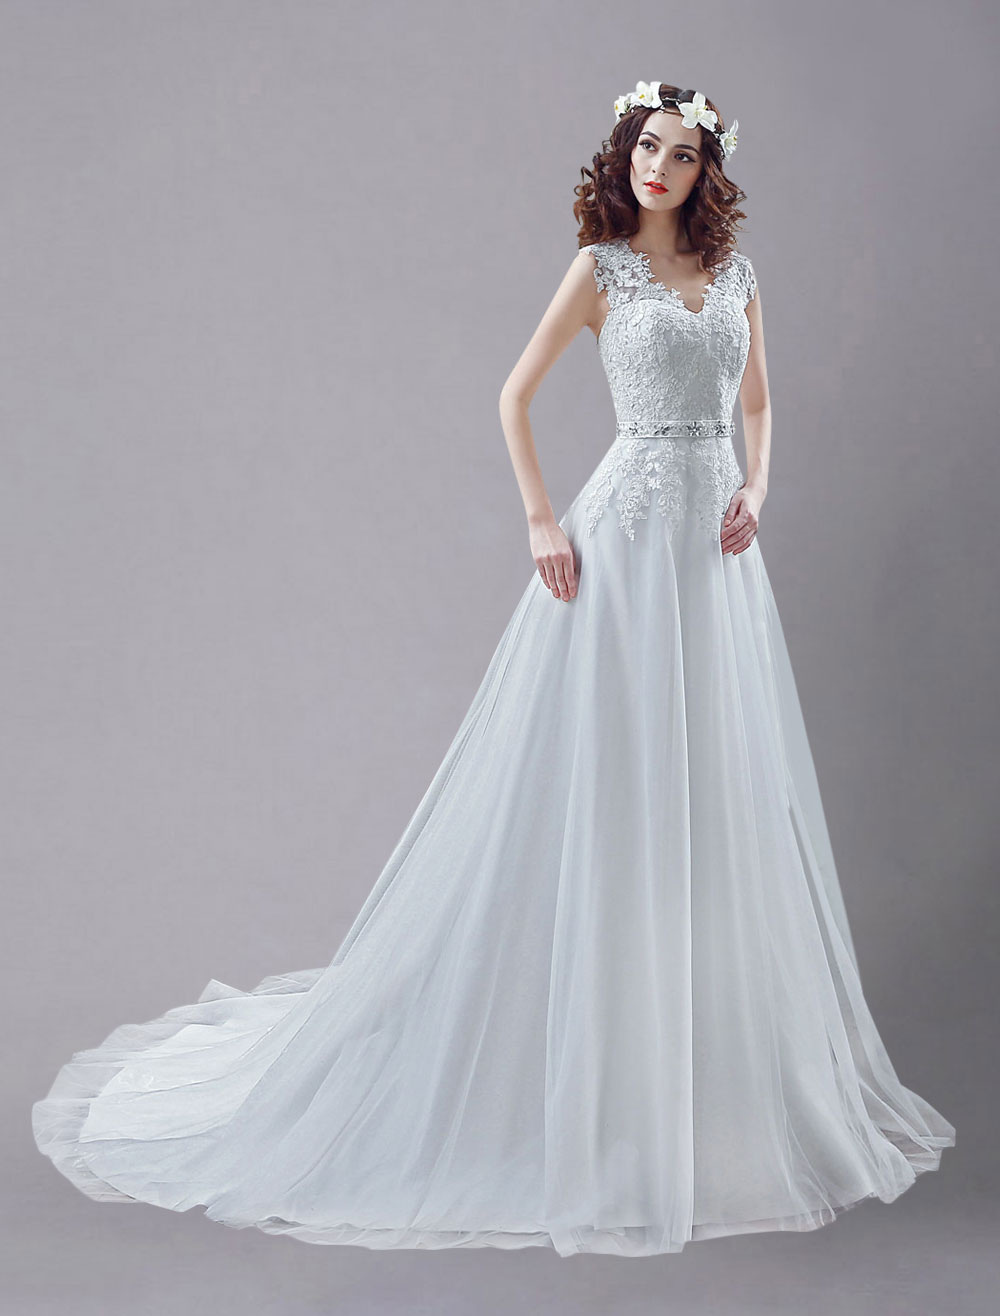 White Wedding Dress Queen Anne Embroidered Sash Lace Wedding Gown ...